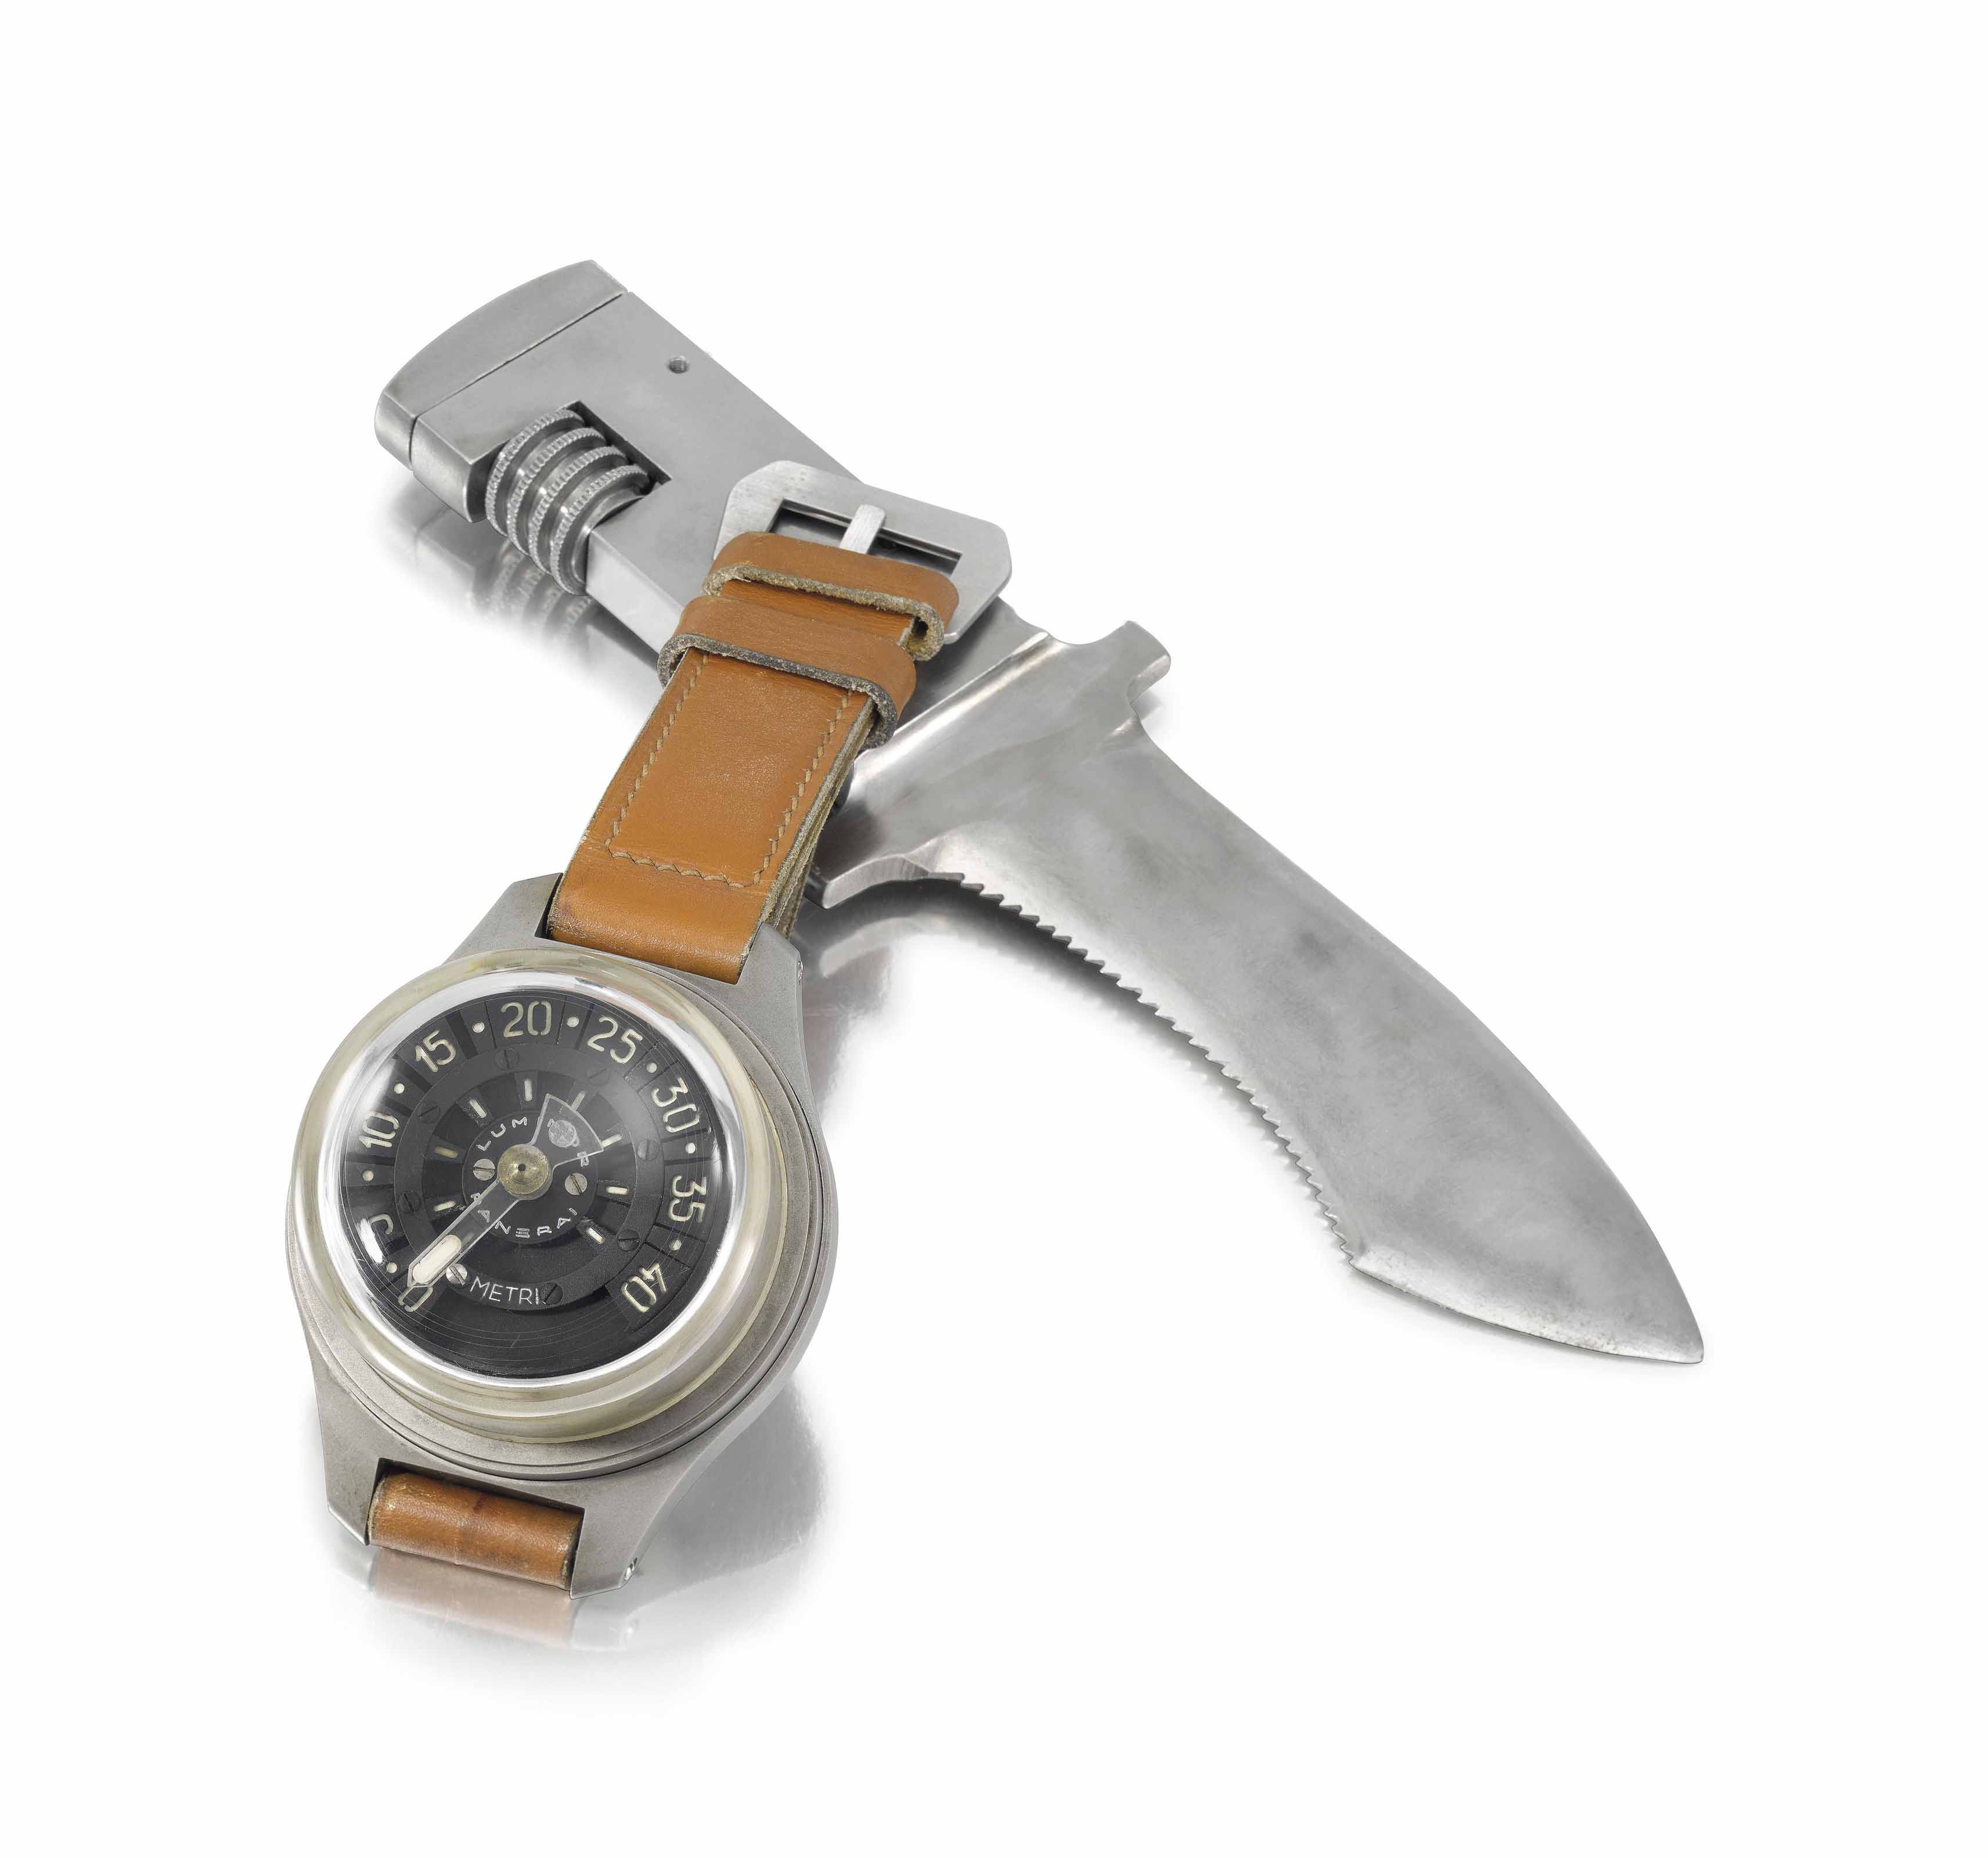 Panerai. A very rare and massive stainless steel wrist depth gauge with diver's knife